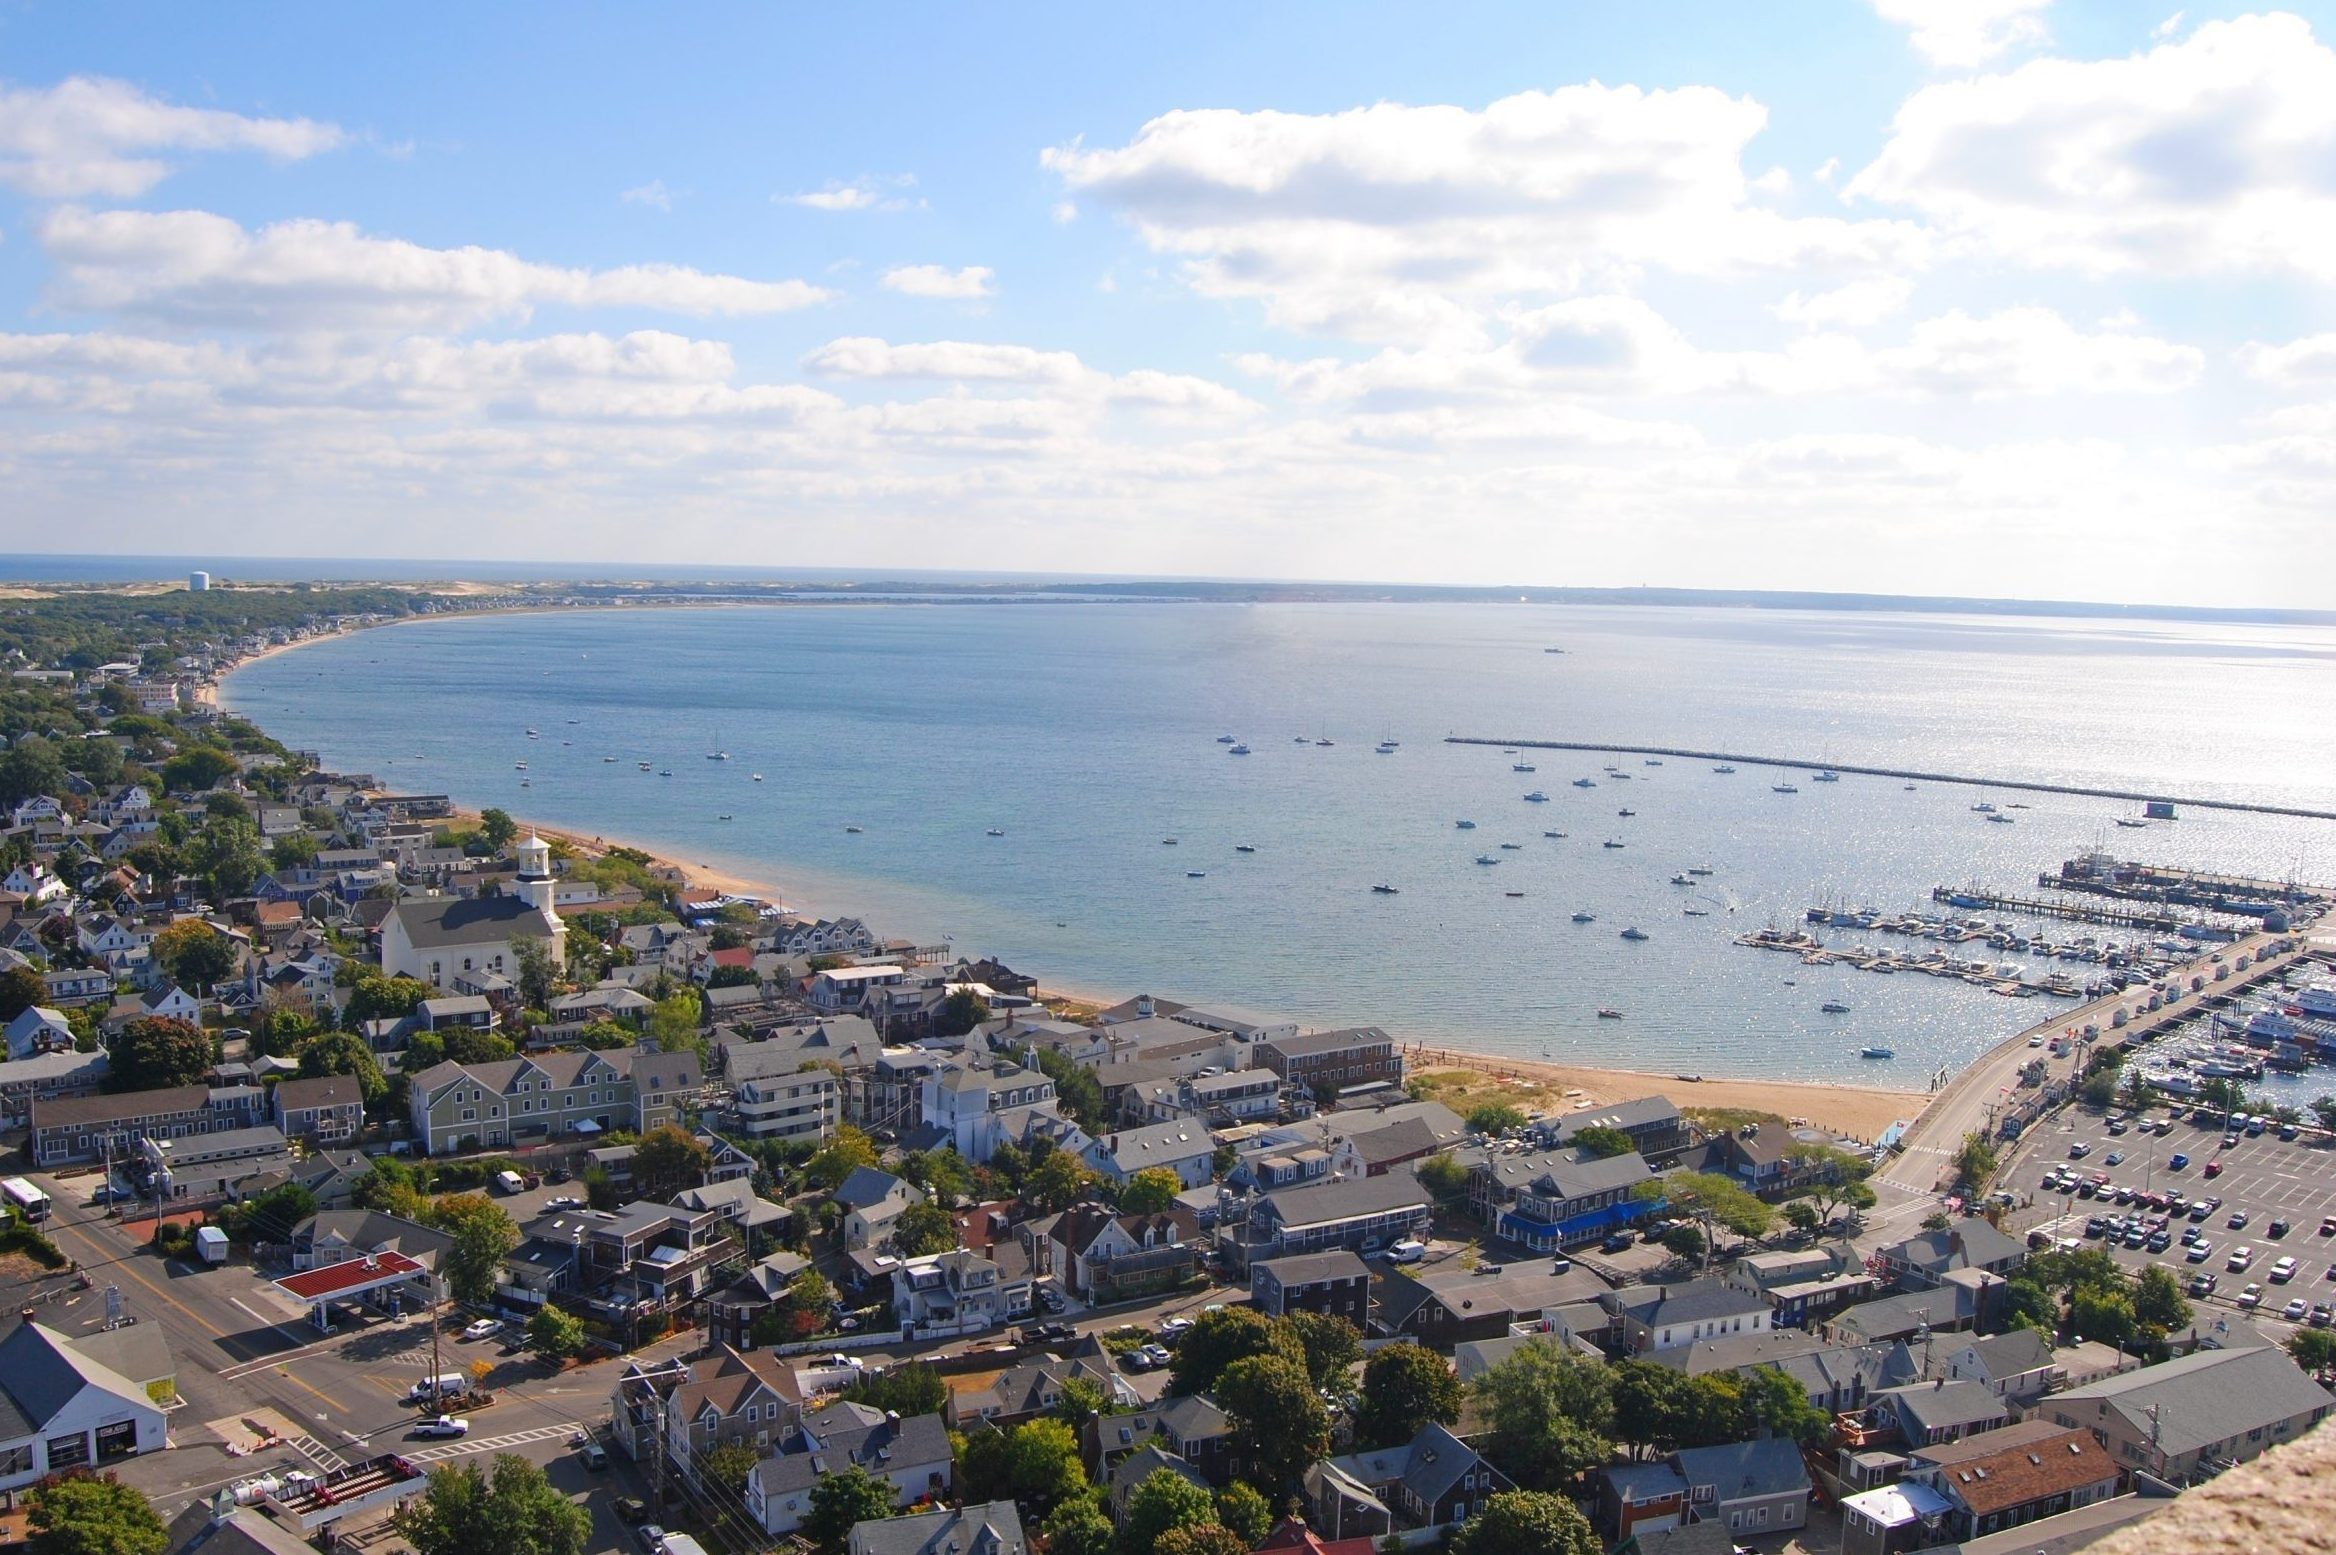 View over Provincetown, Massachusetts toward East Harbor.